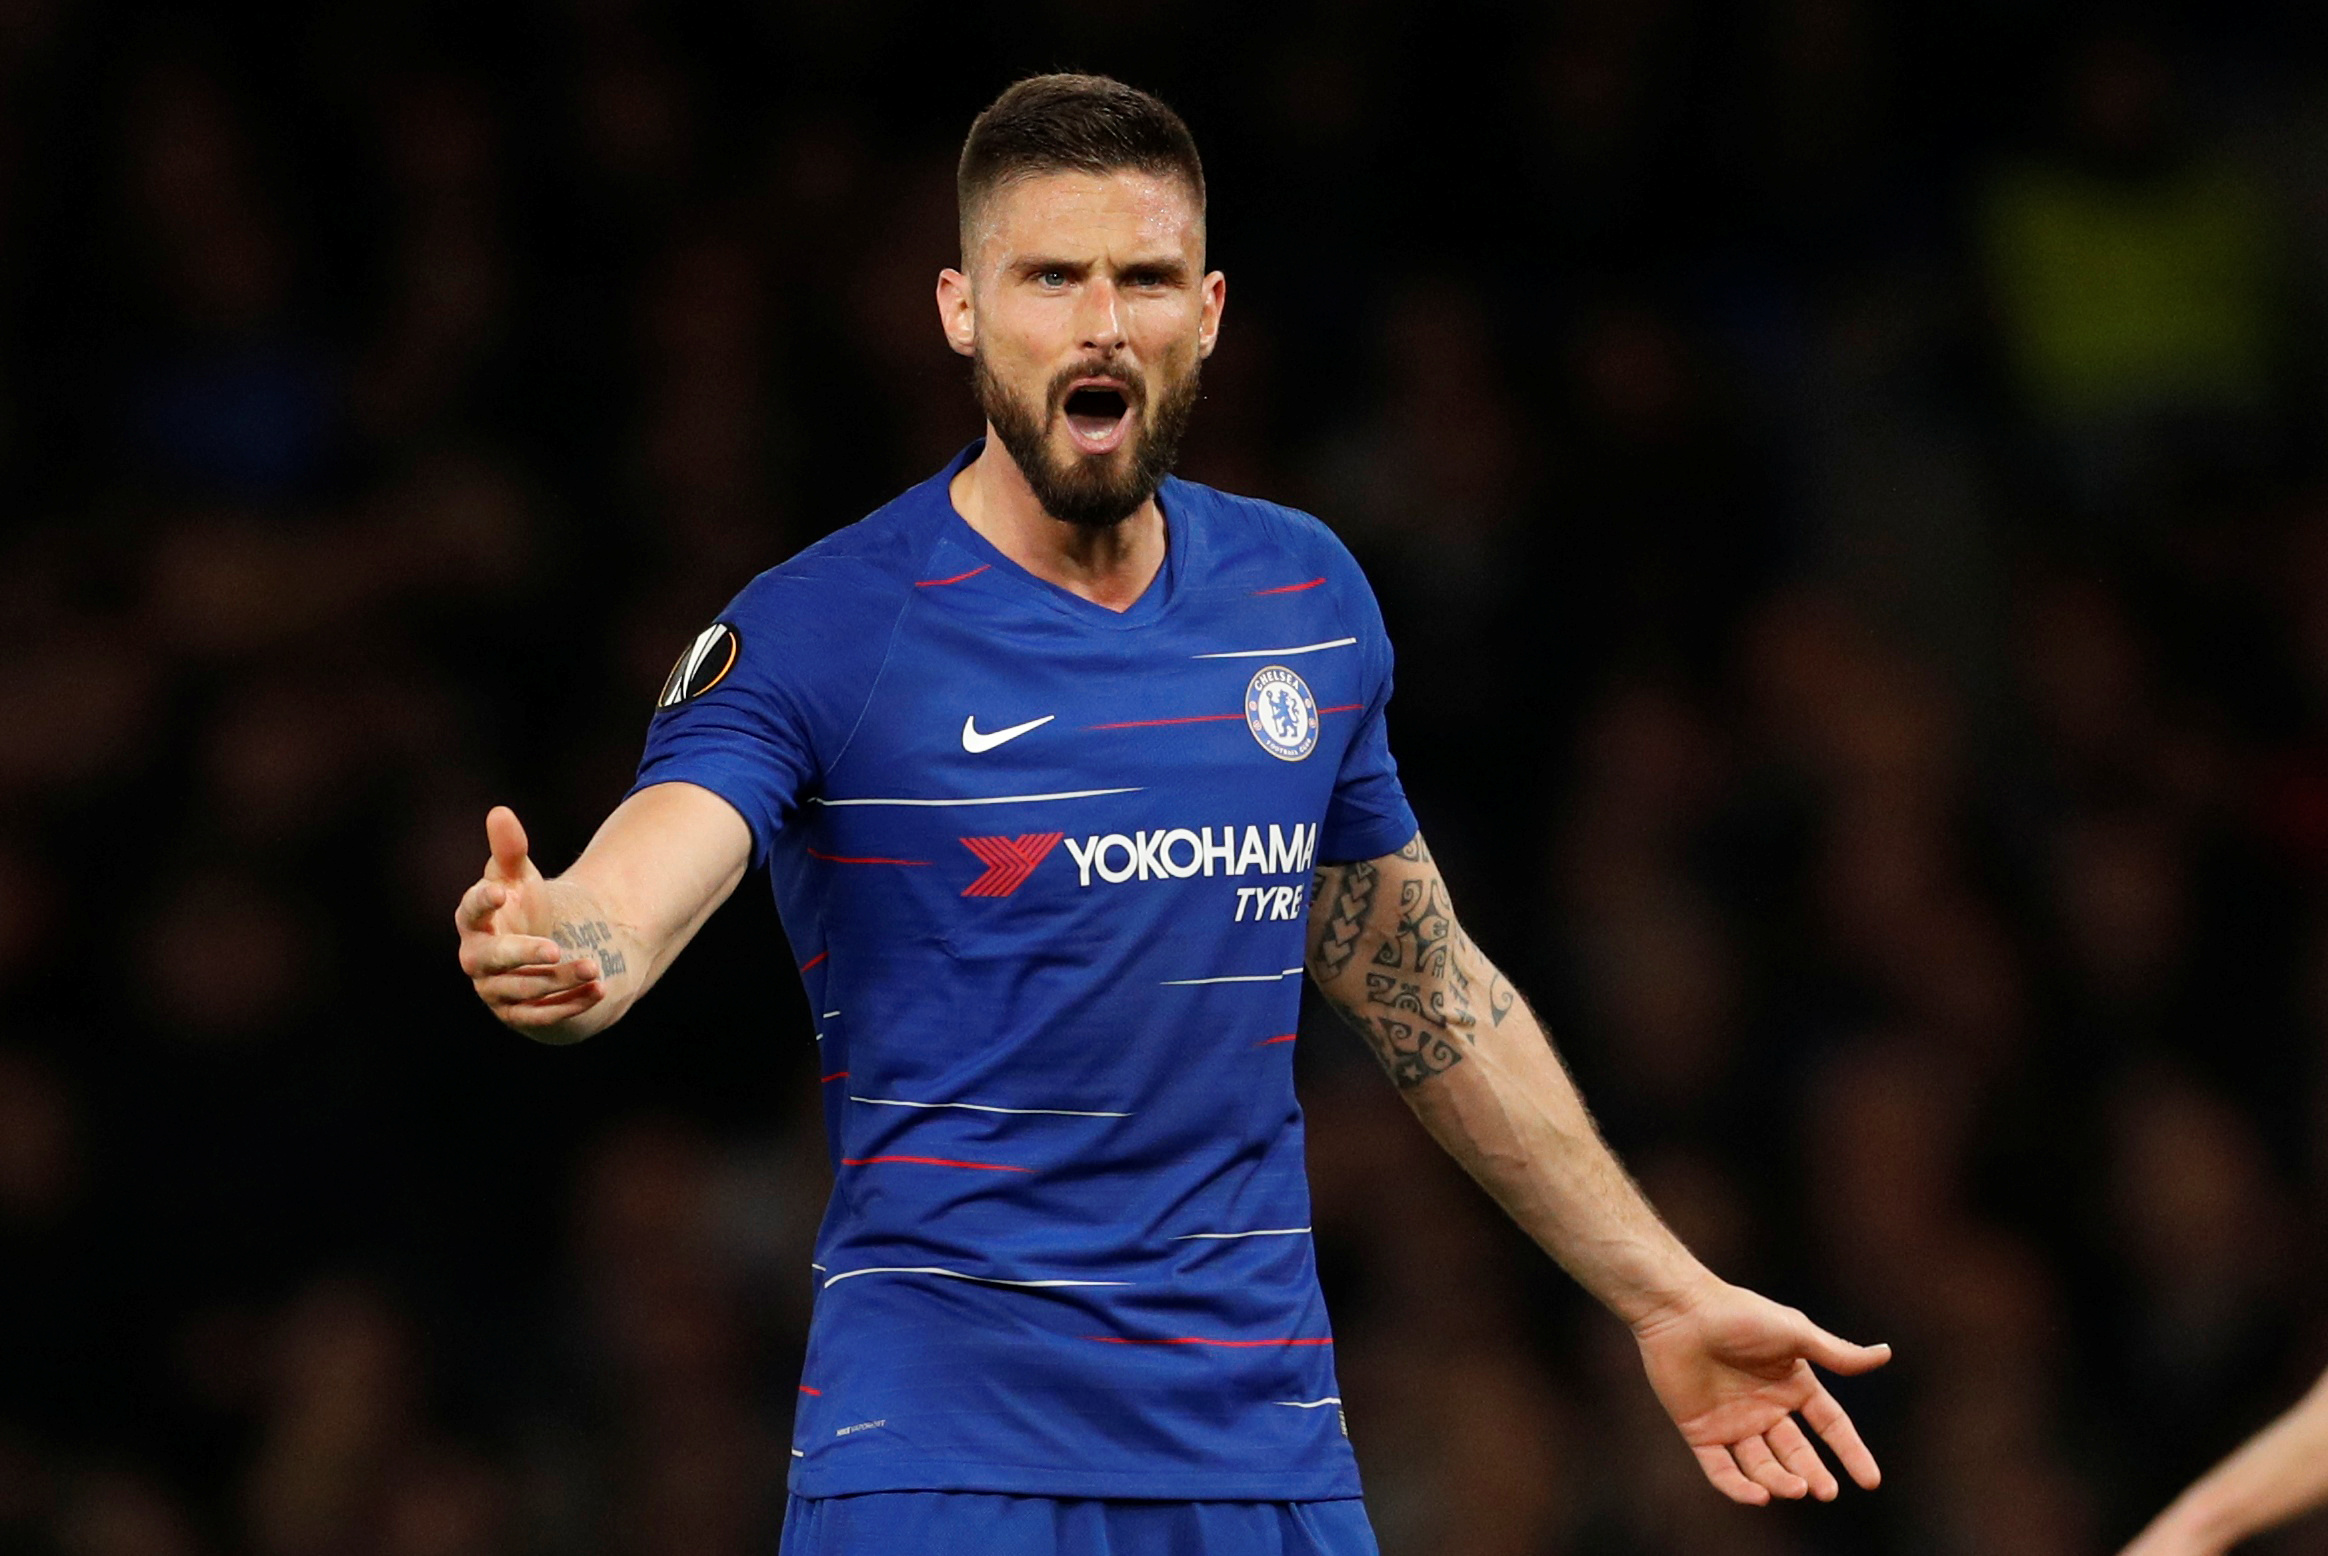 low priced 3980e 2b85d Chelsea's Giroud signs one-year contract extension | The ...